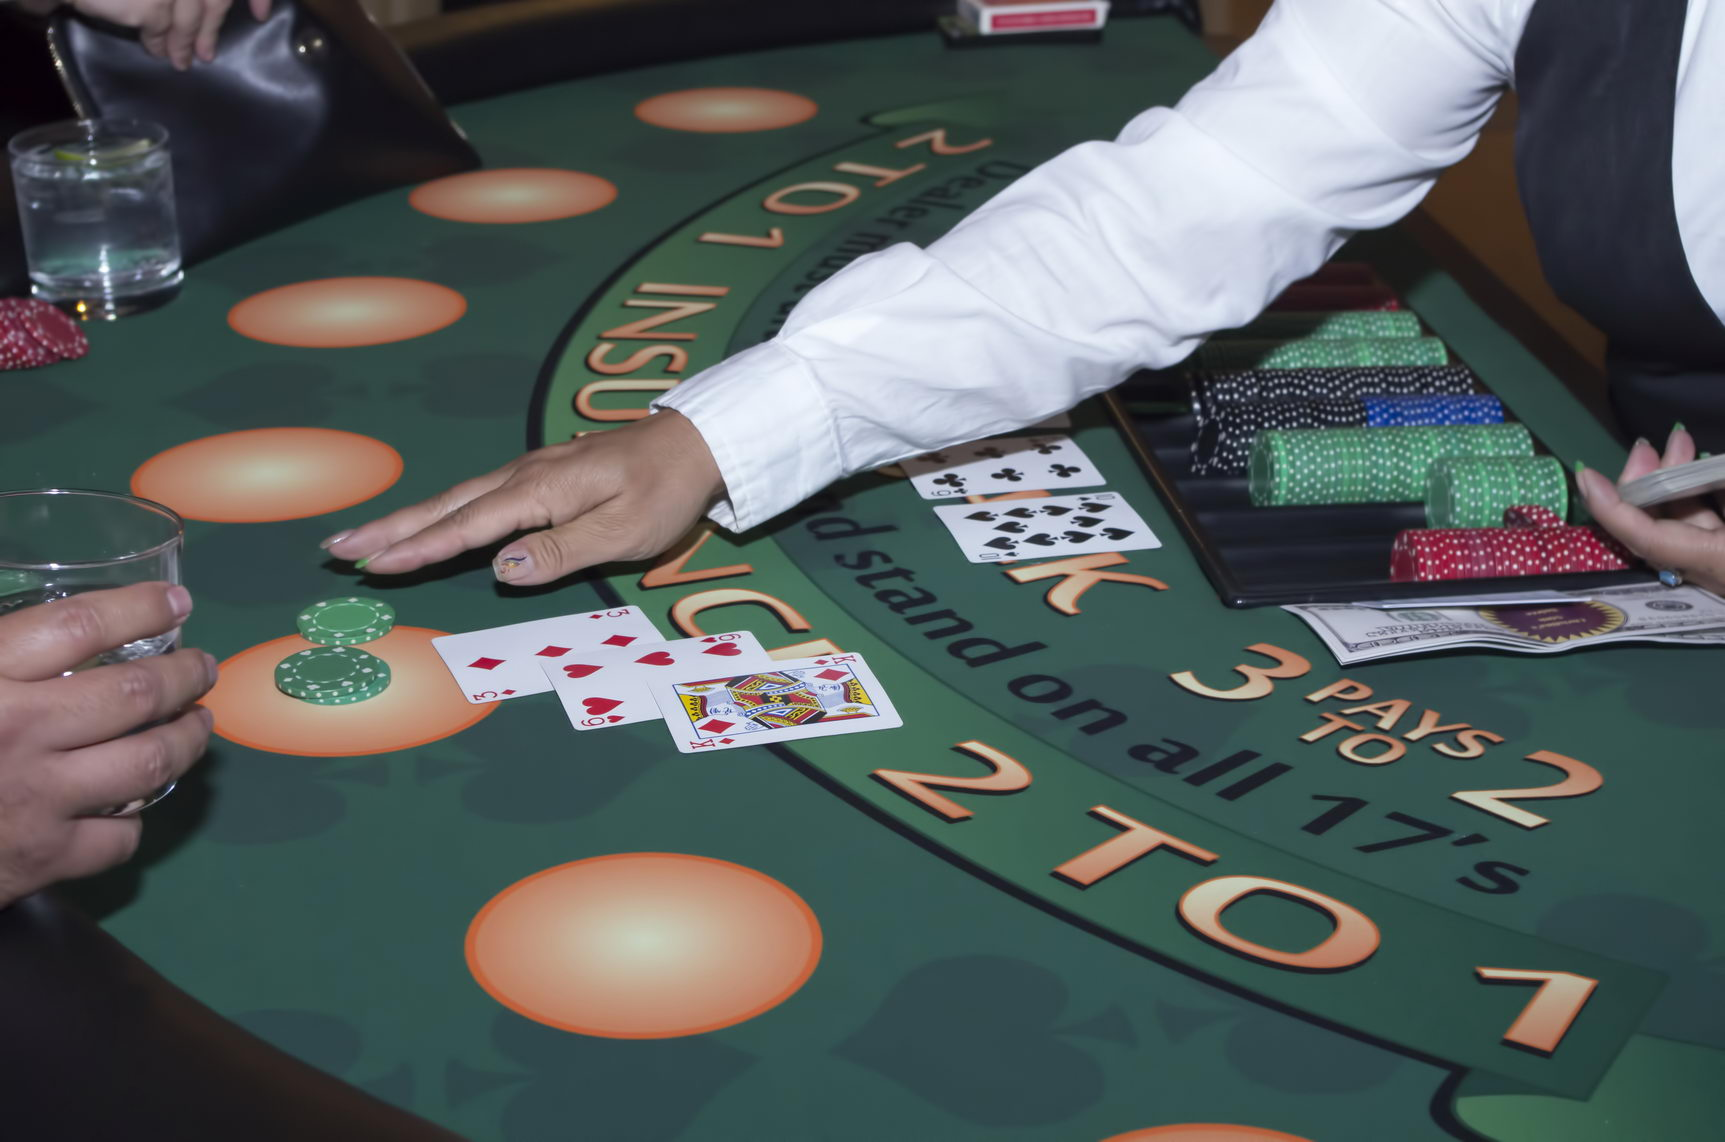 Rent Casino-Quality Blackjack Table in S.F.